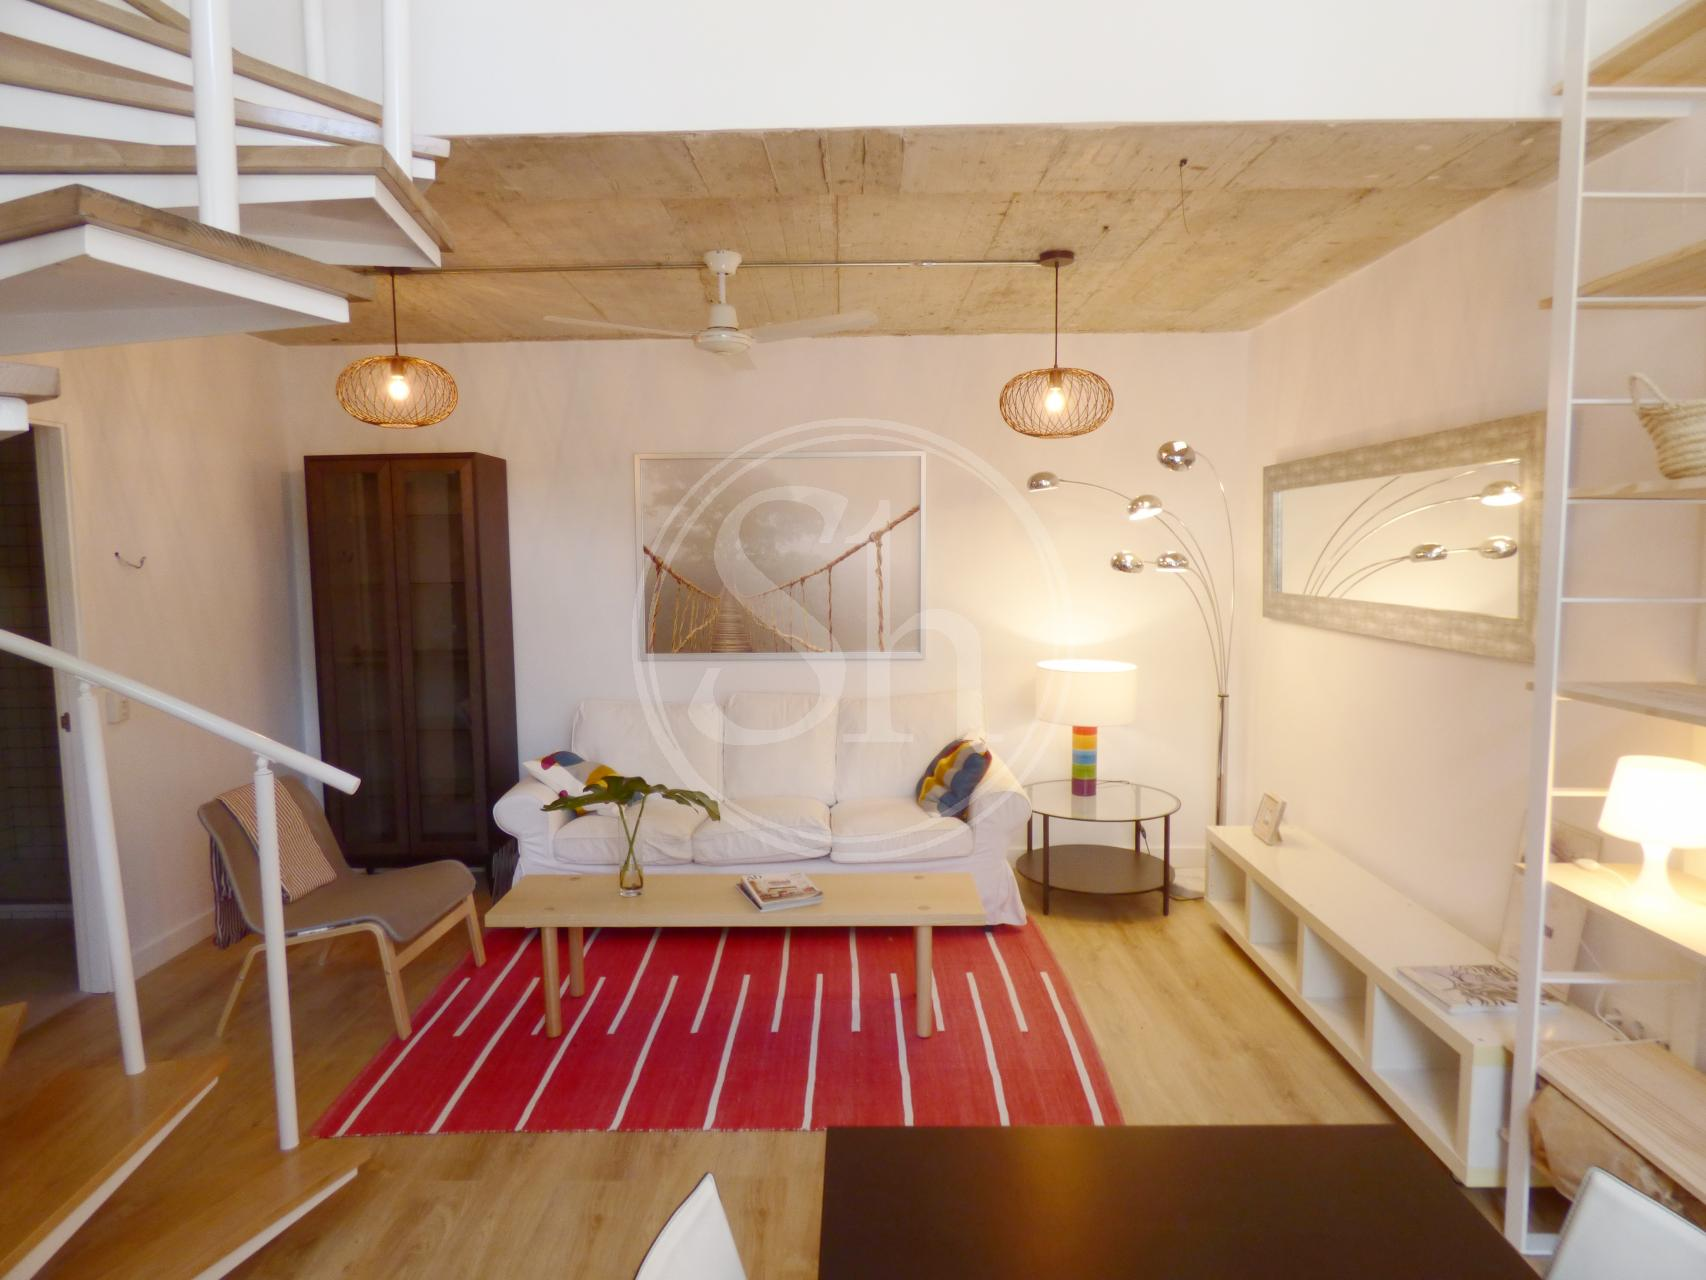 Loft For Rent In Madrid Rosario Romero Plaza Castilla